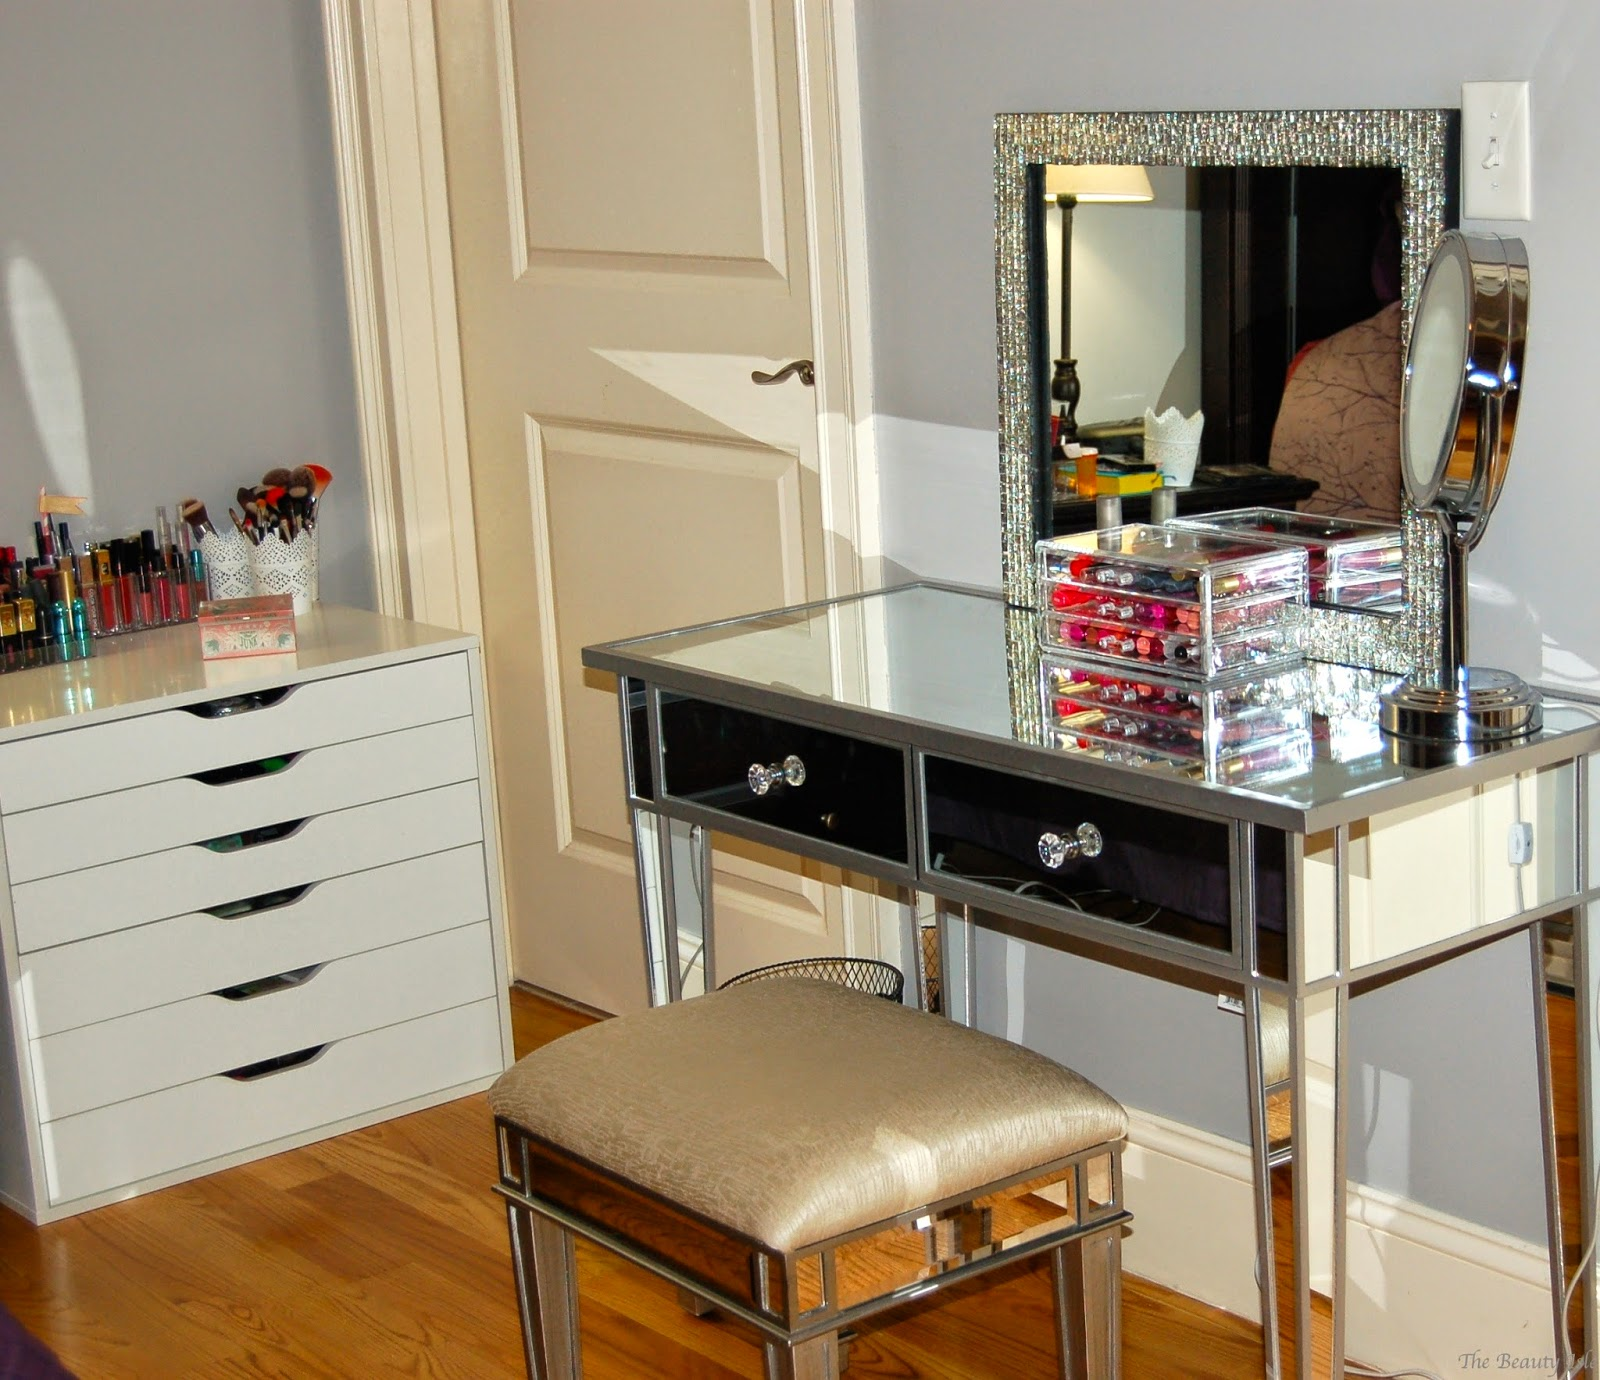 Cheap Makeup Chairs Makeup Collection And Storage 2015 Part 2 Mirrored Vanity